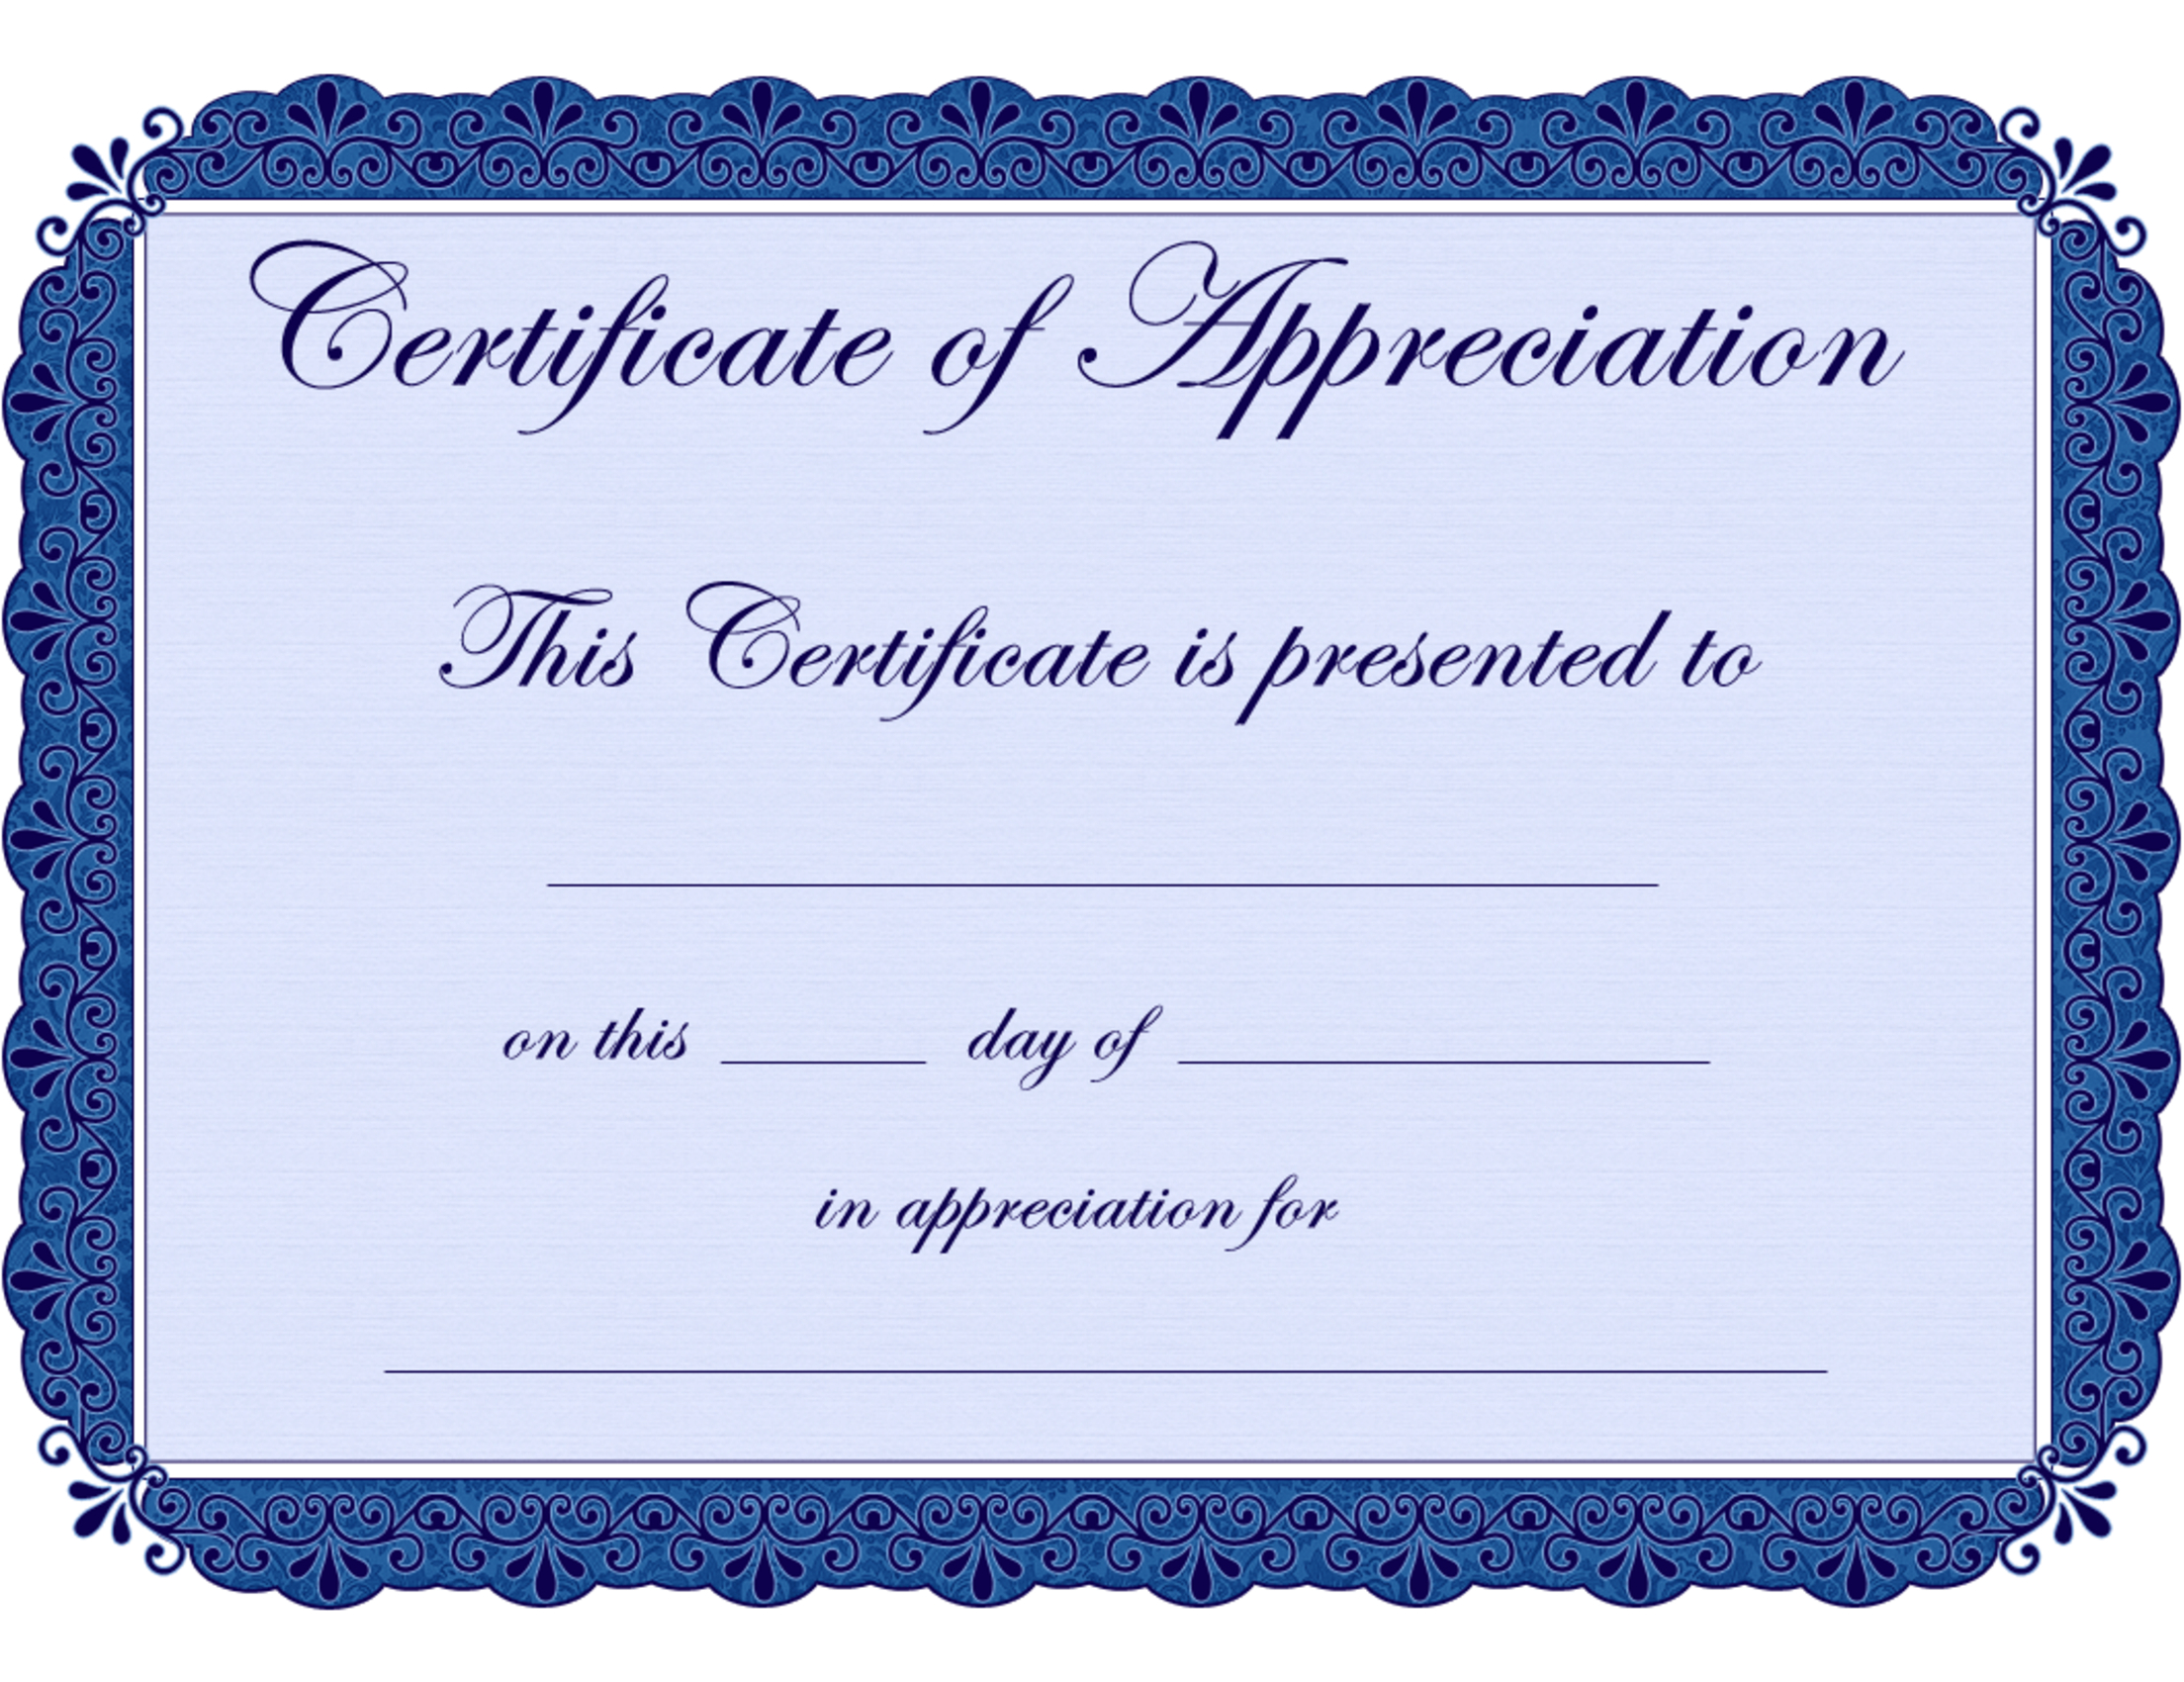 Free Printable Certificates Certificate Of Appreciation With Free Certificate Of Excellence Template